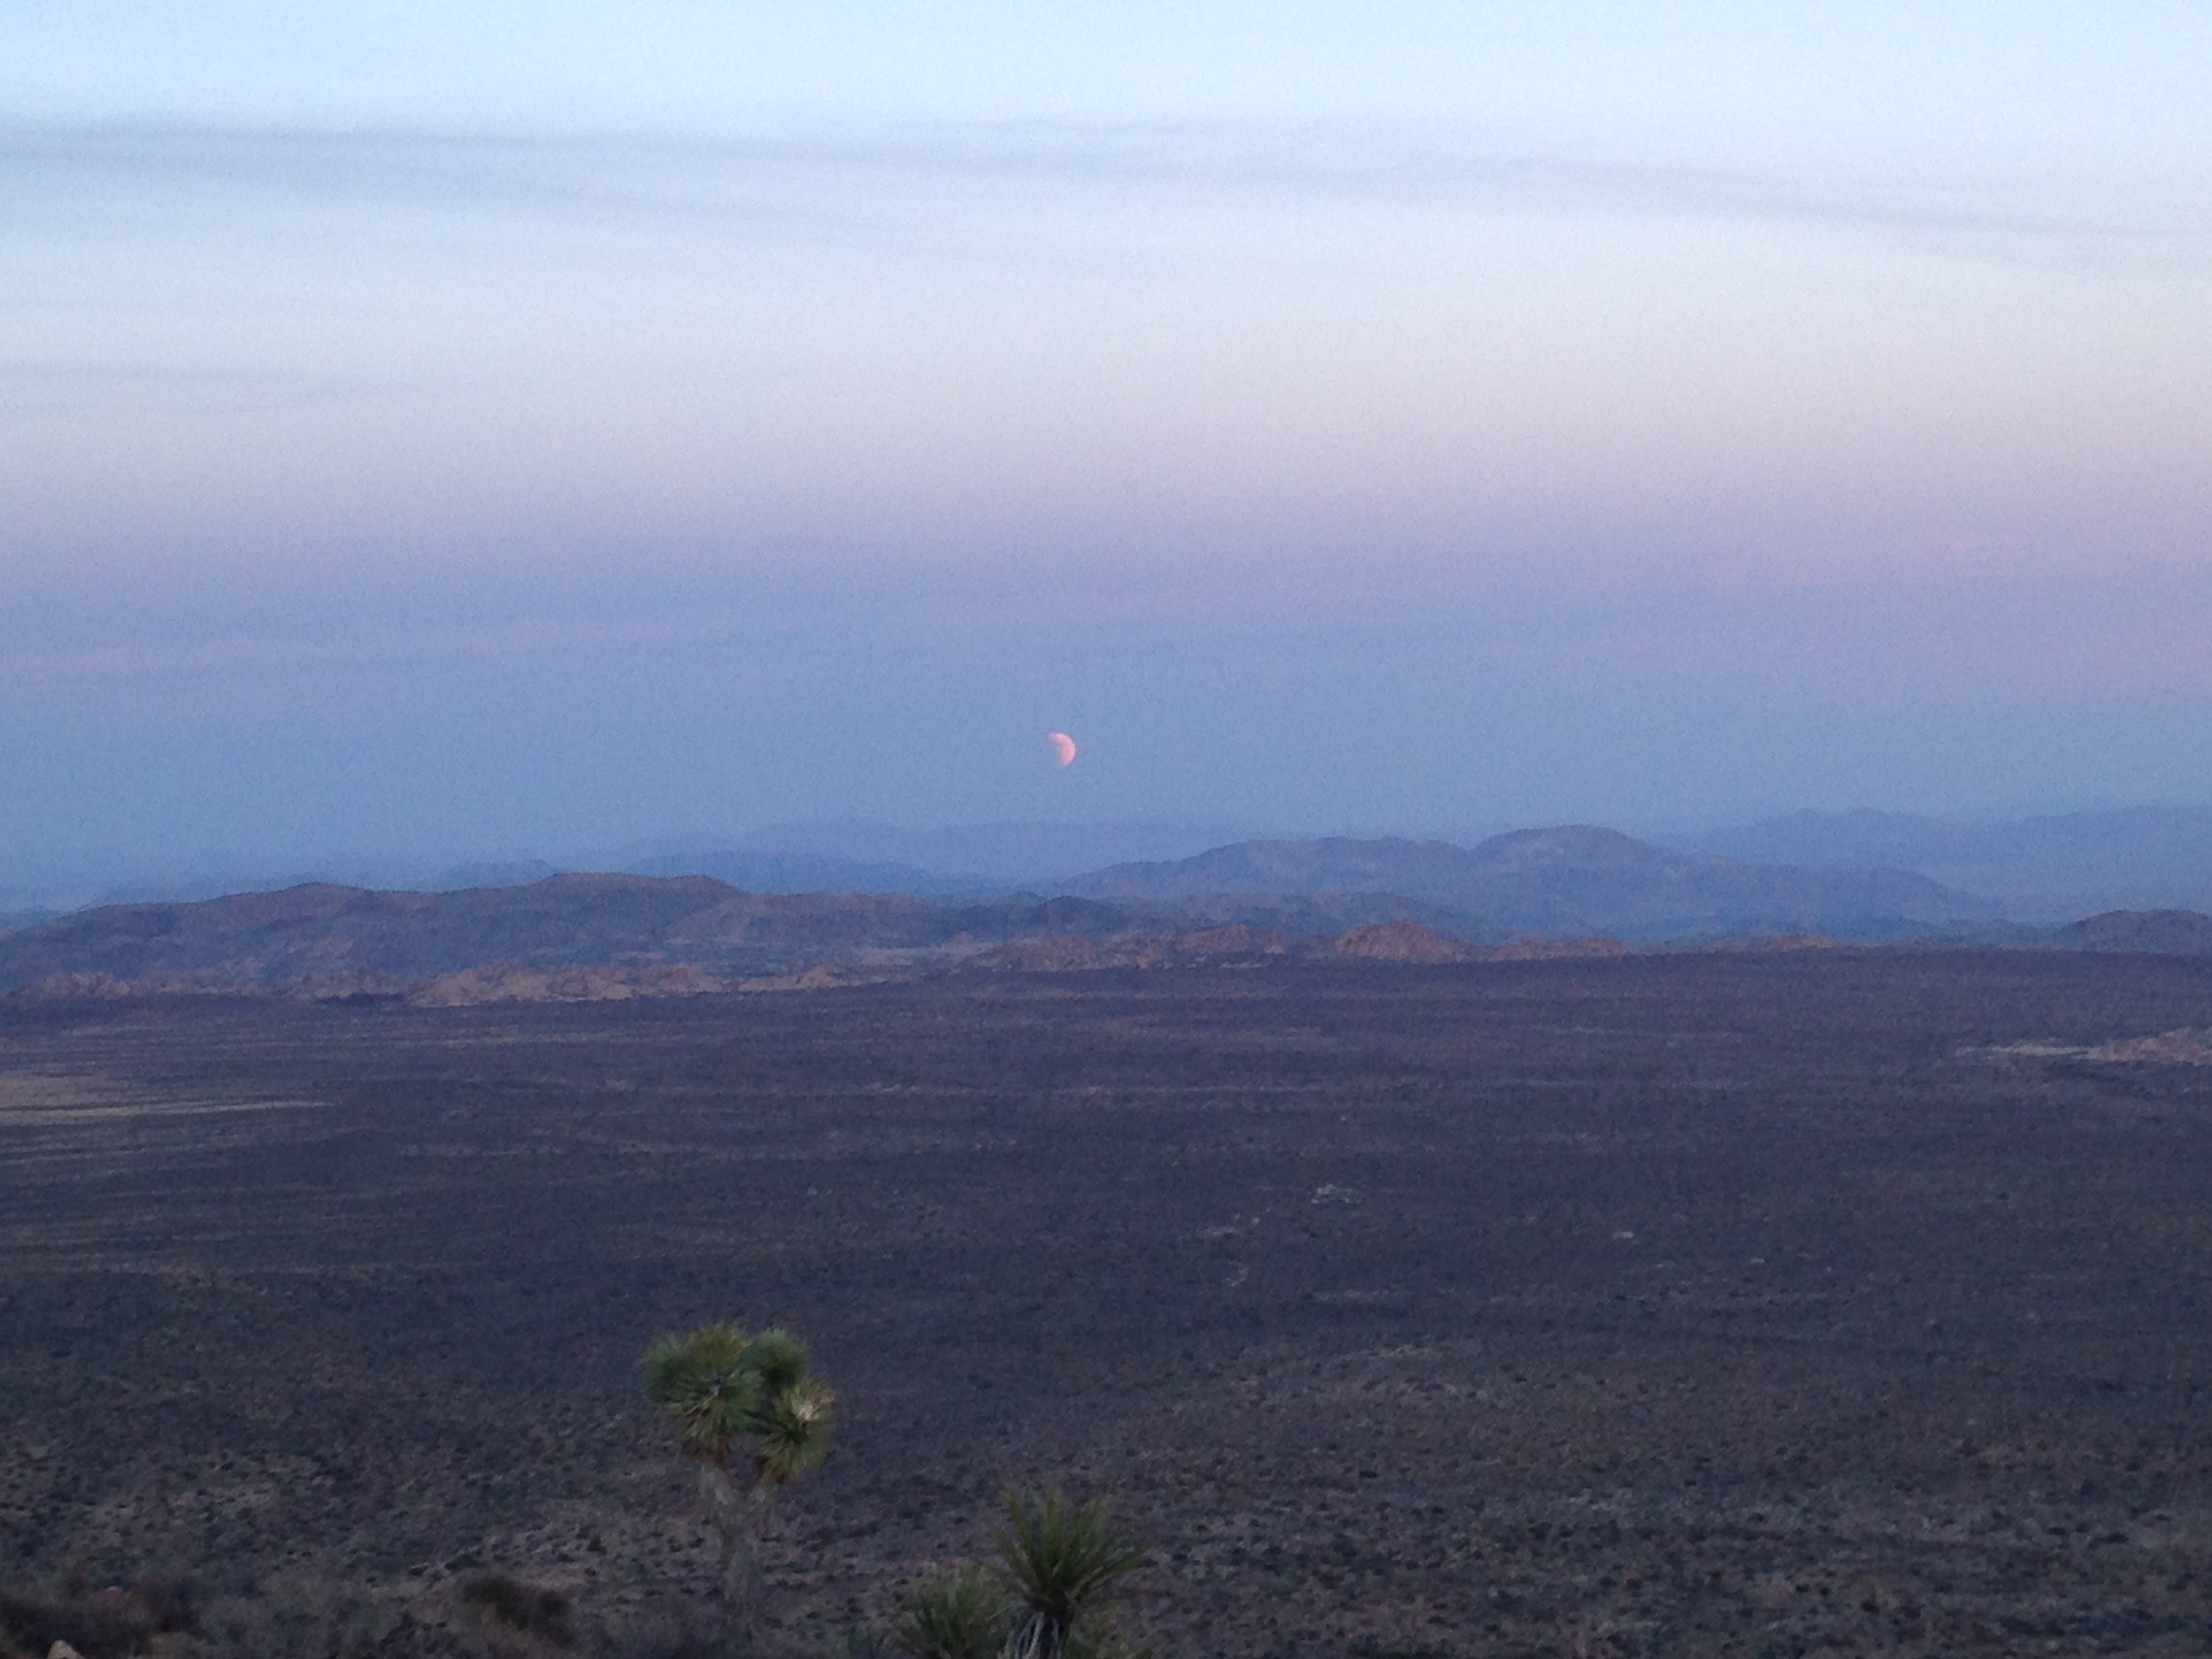 Watching the lunar eclipse from Ryan Mountain in Joshua Tree. Big horned were out at twilight watching too